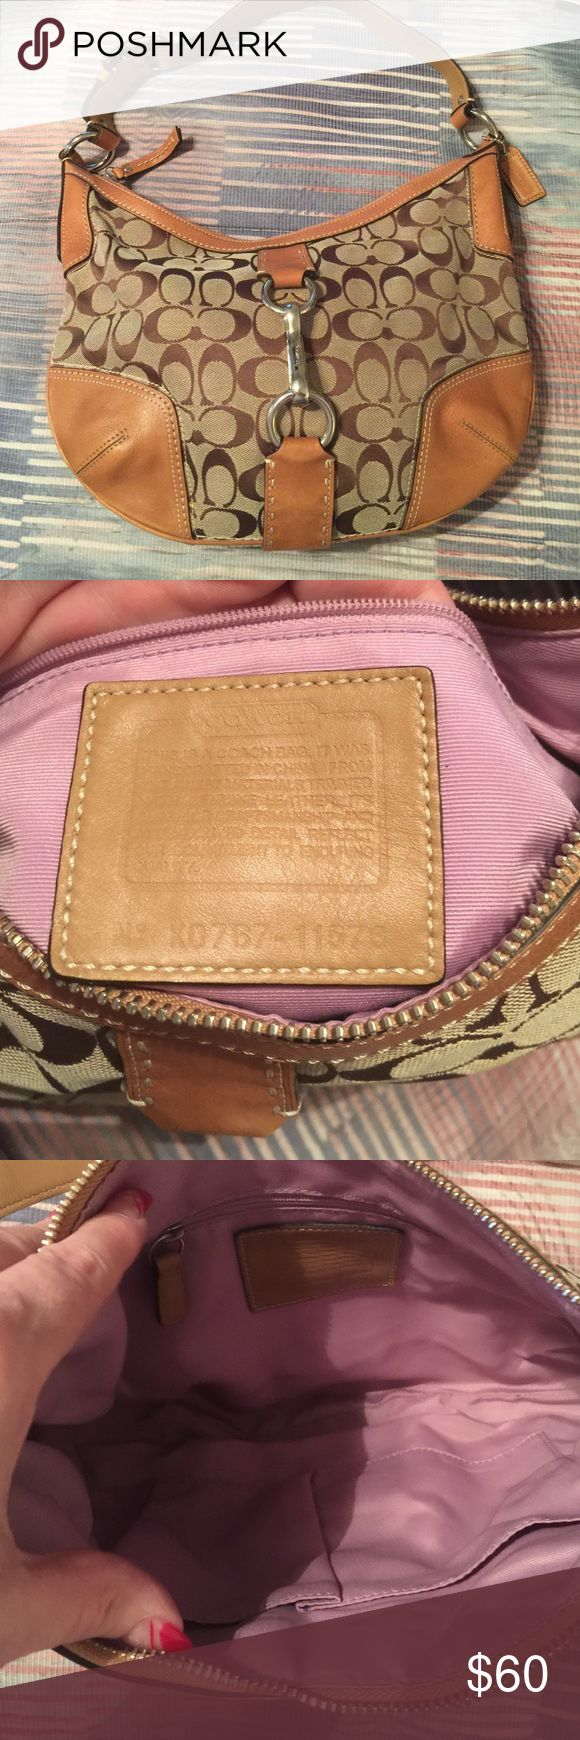 Coach authentic hobo bag Lightly used coach hobo bag without tags Coach Bags Hobos